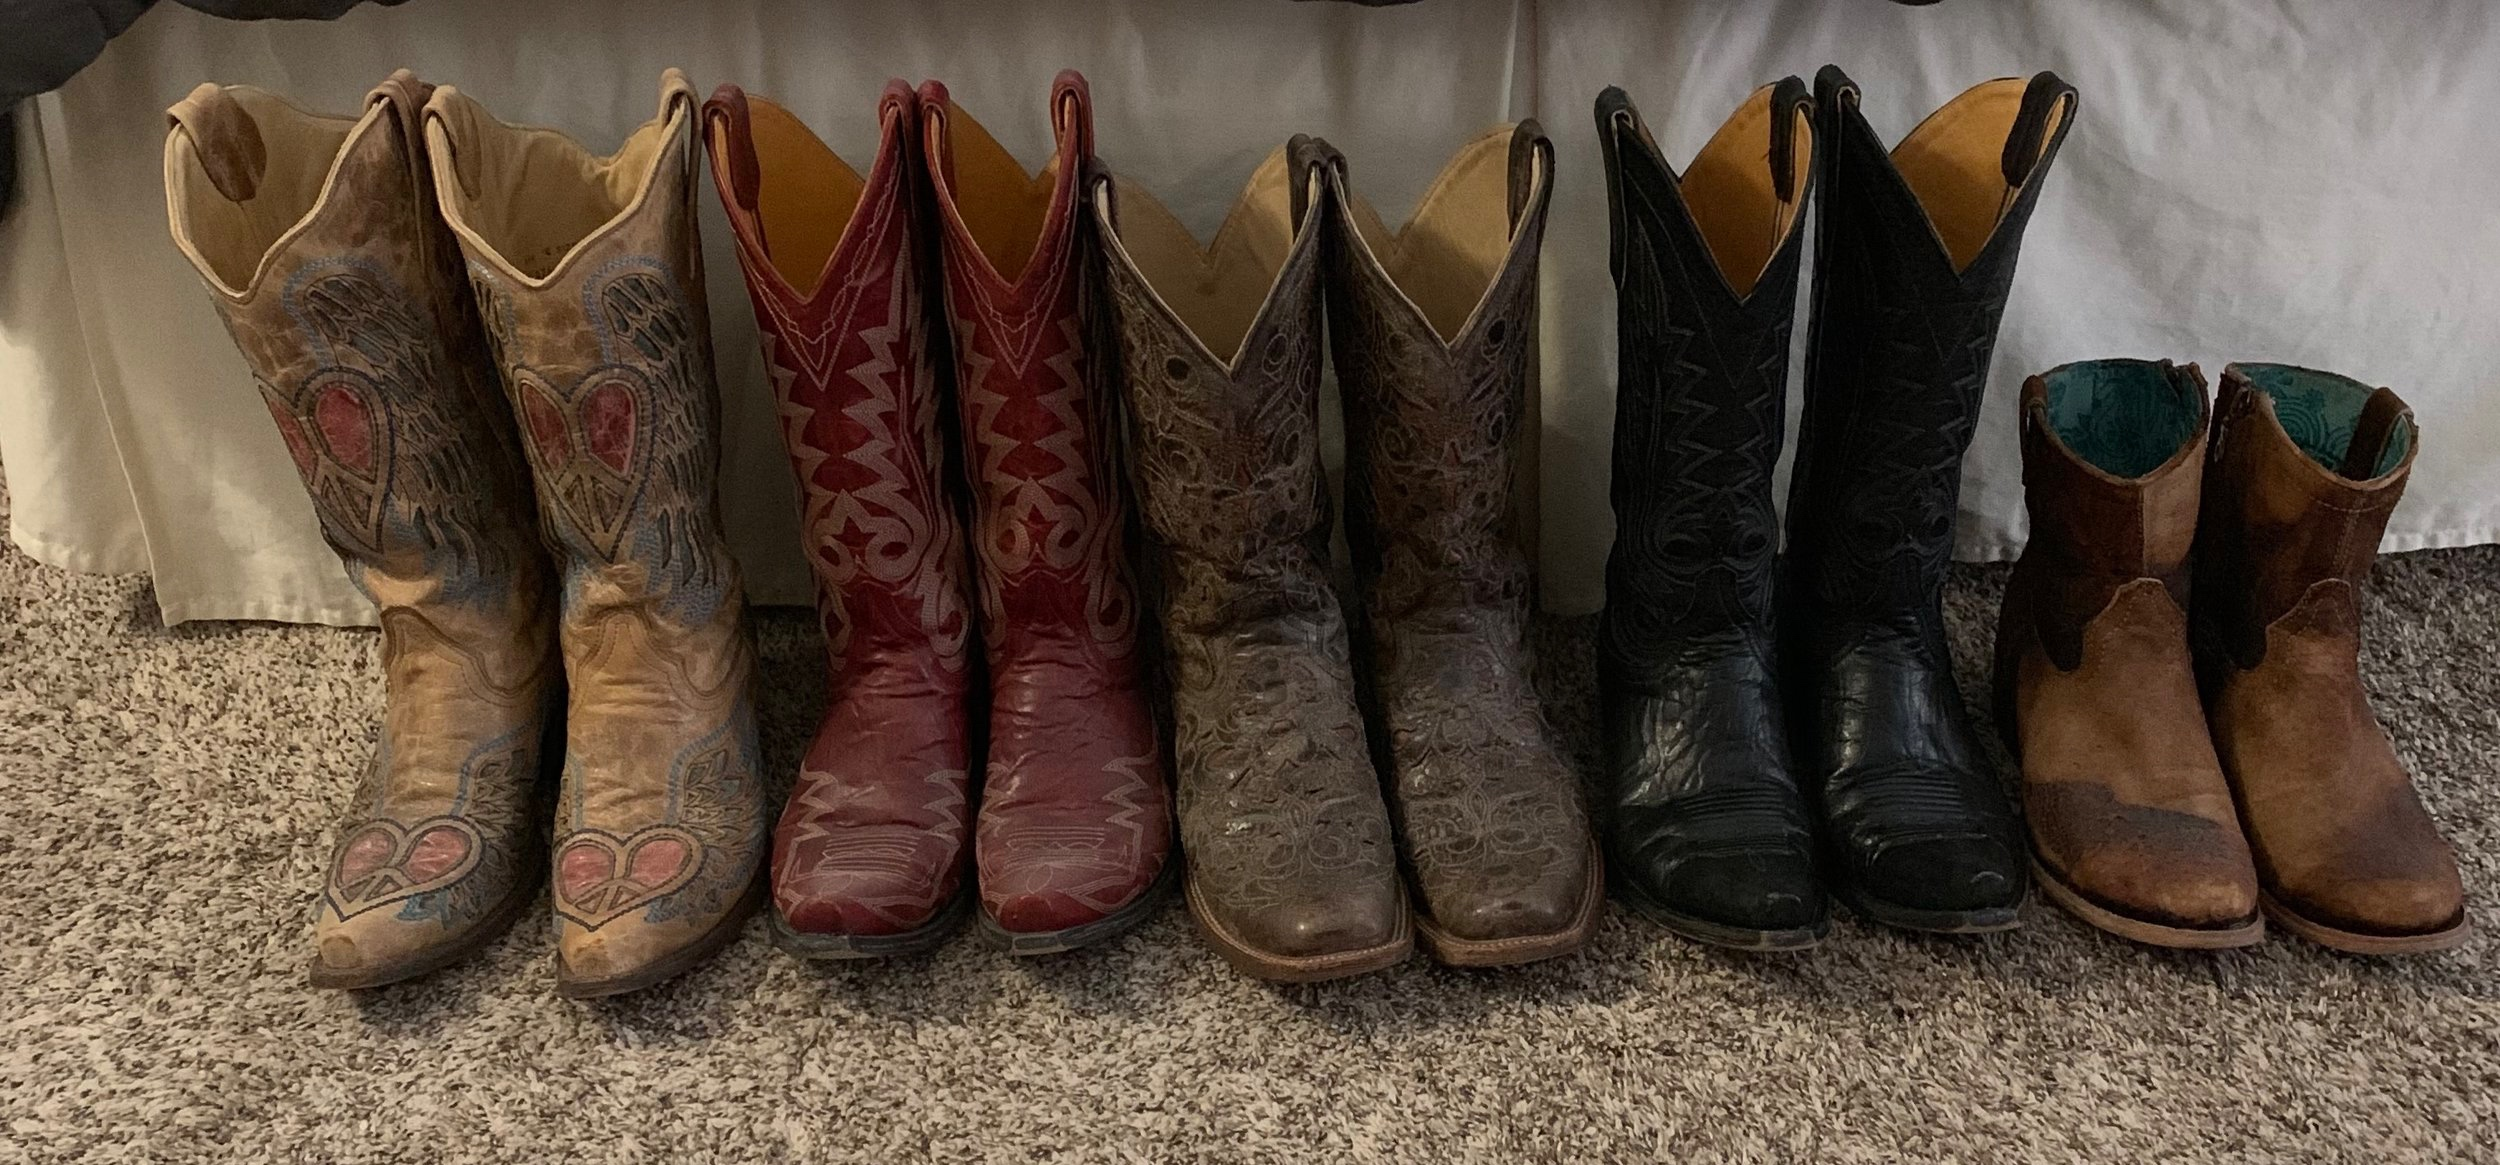 Suze has already given away 3 or 4 pairs over the last few years. We think we can find room in the RV for these special friends.